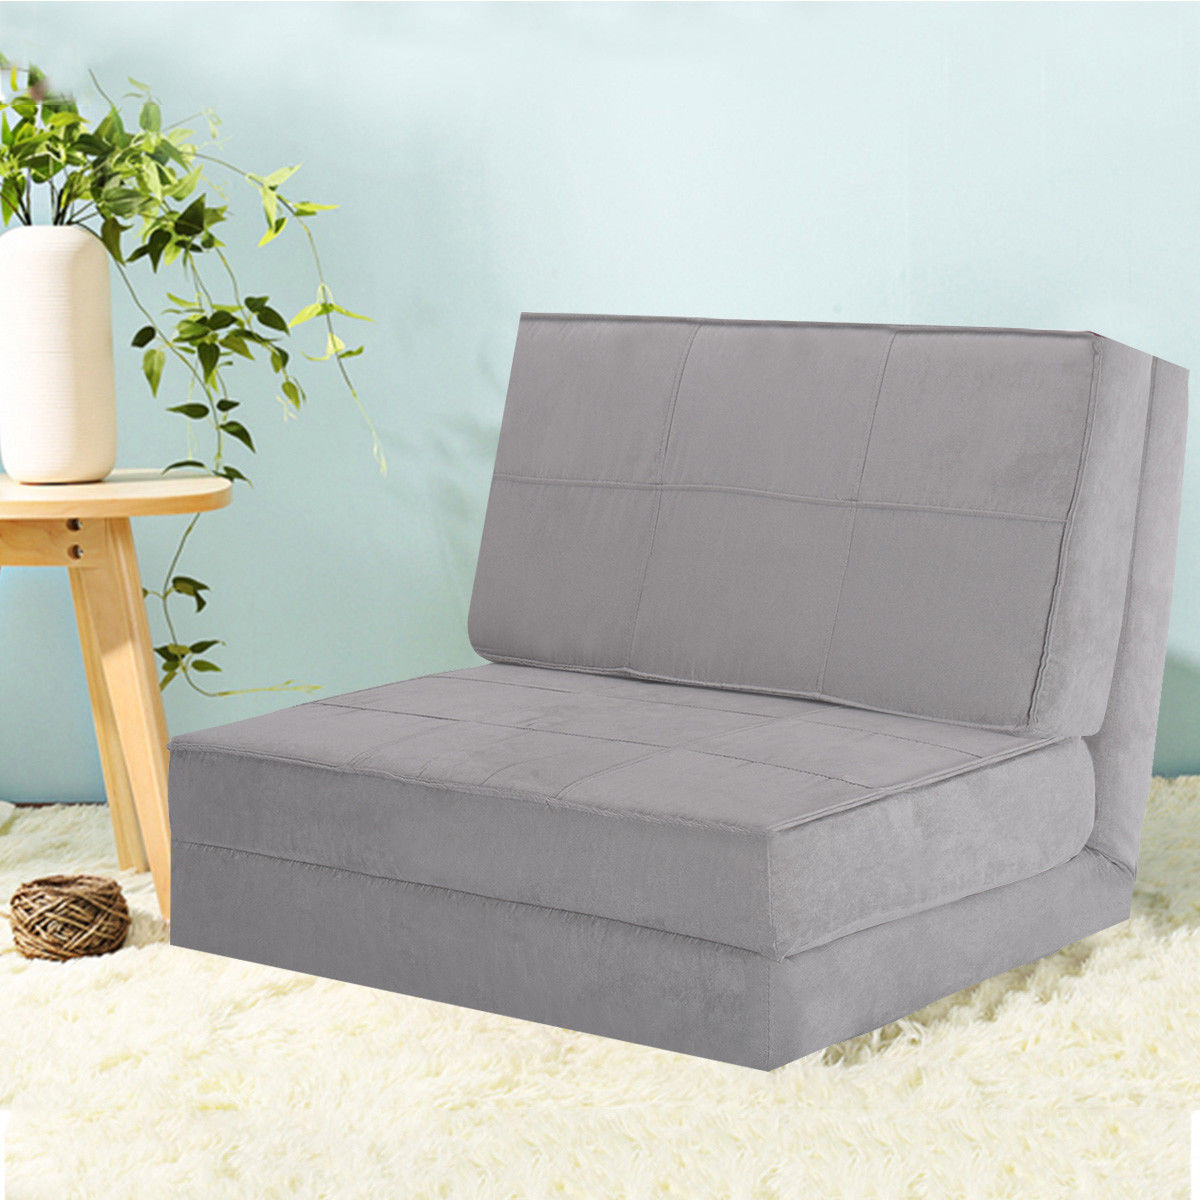 Costway Fold Down Chair Flip Out Lounger Convertible Sleeper Bed Couch Game Dorm Guest (Gray)